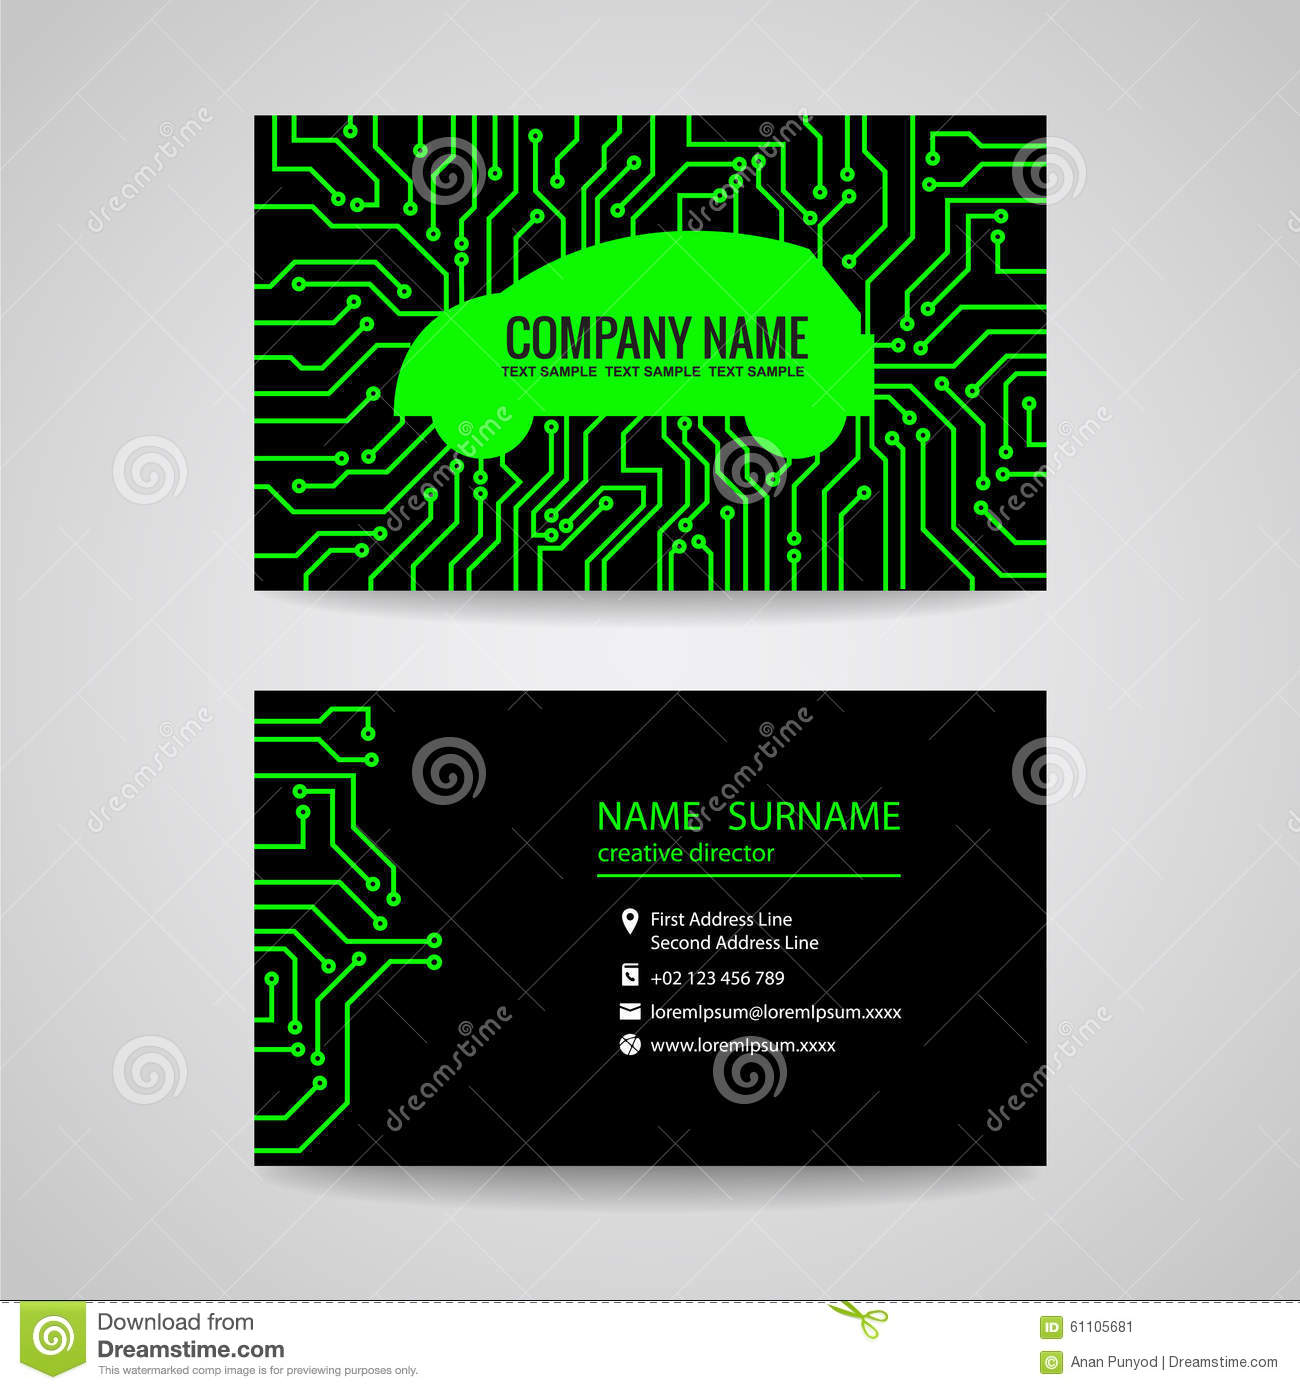 Business card green car and electronic printed circuit board on business card green car and electronic printed circuit board on black background reheart Image collections